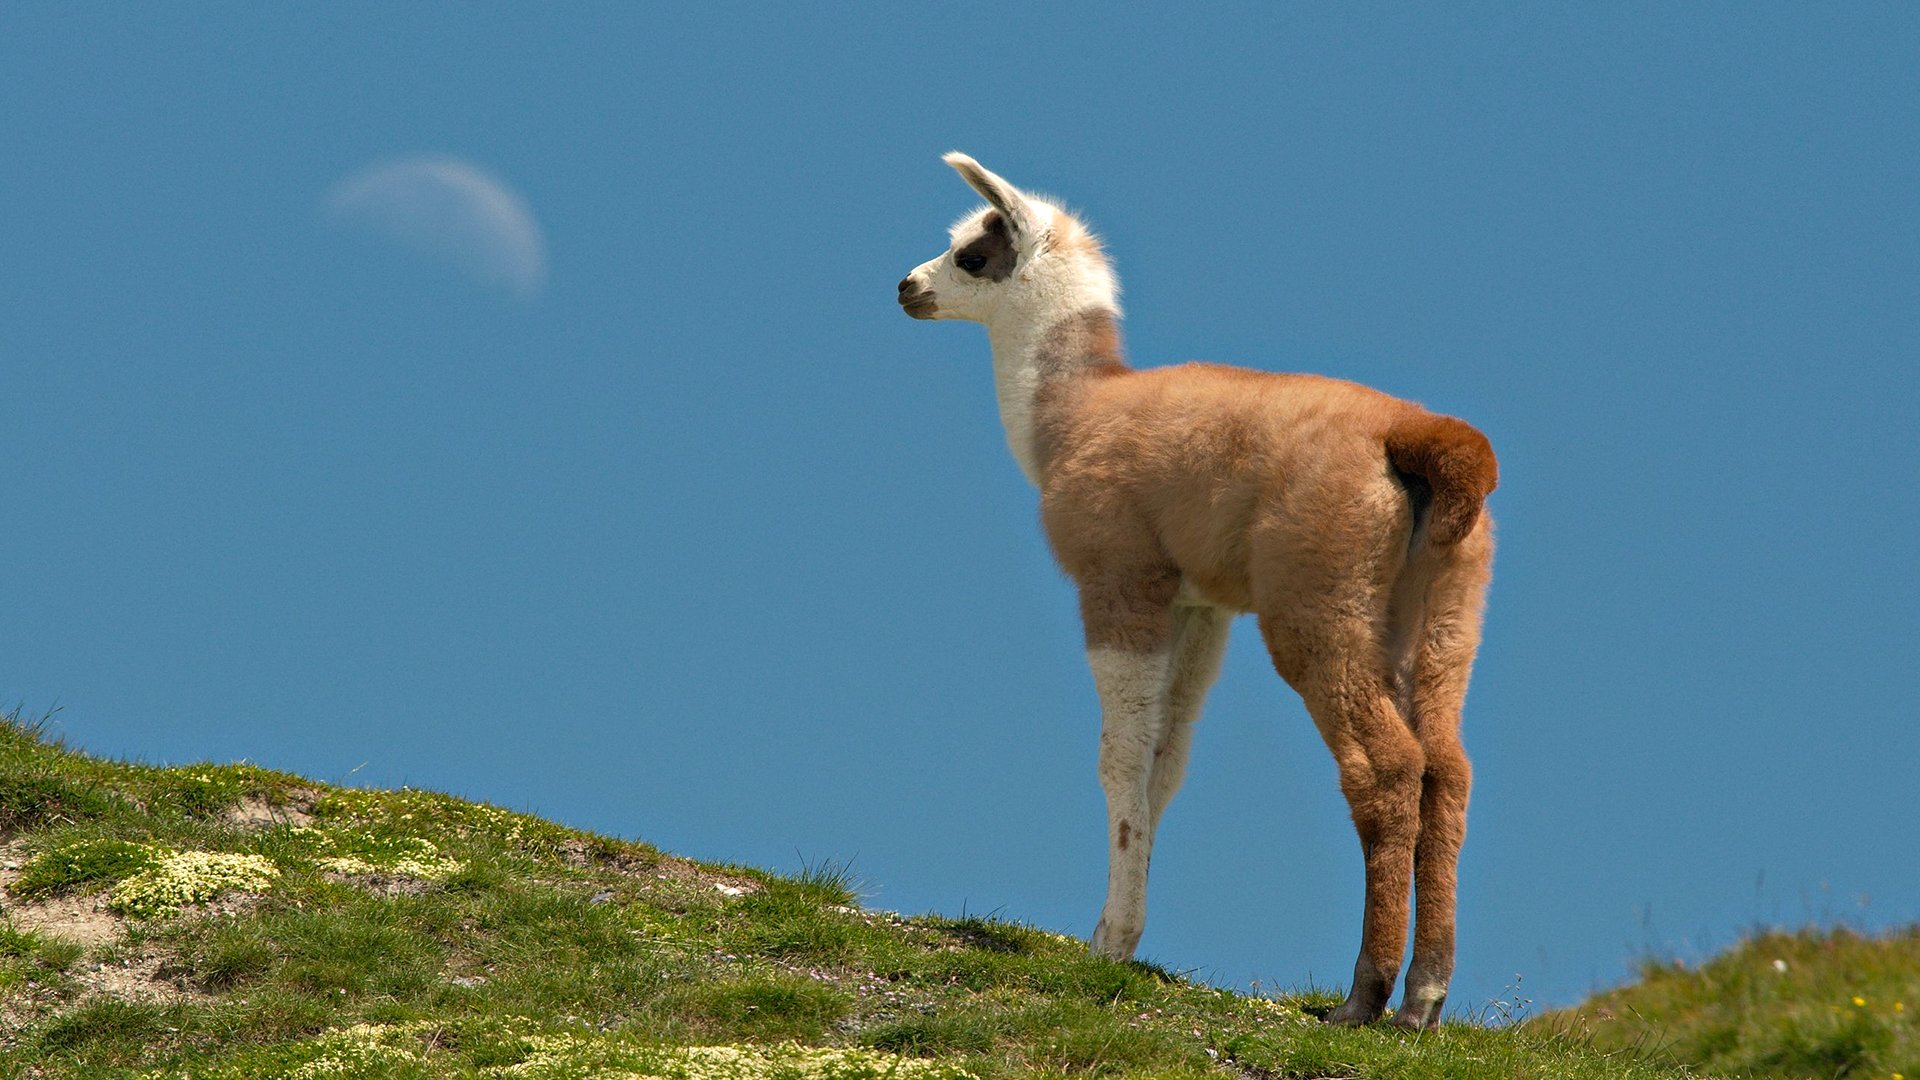 Llama Full HD Wallpaper And Background Image